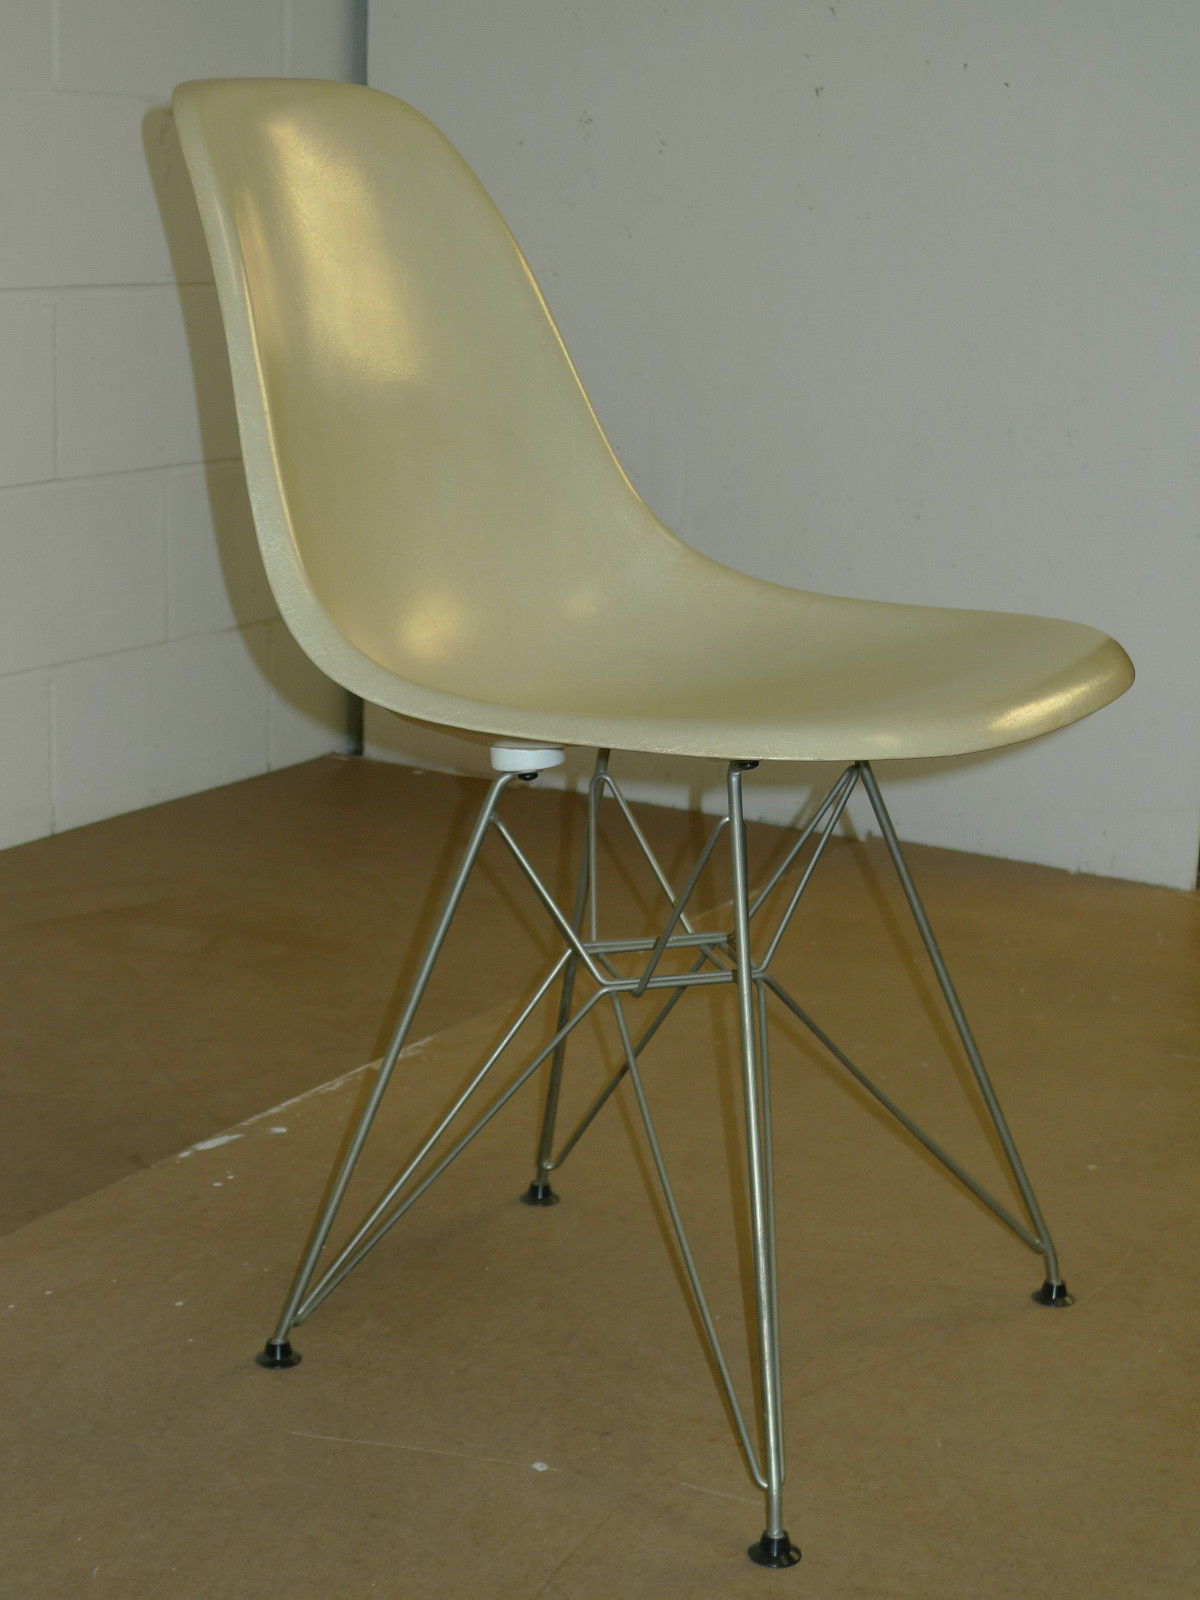 herman miller chairs vintage fisher price potty chair 60s eames shell white